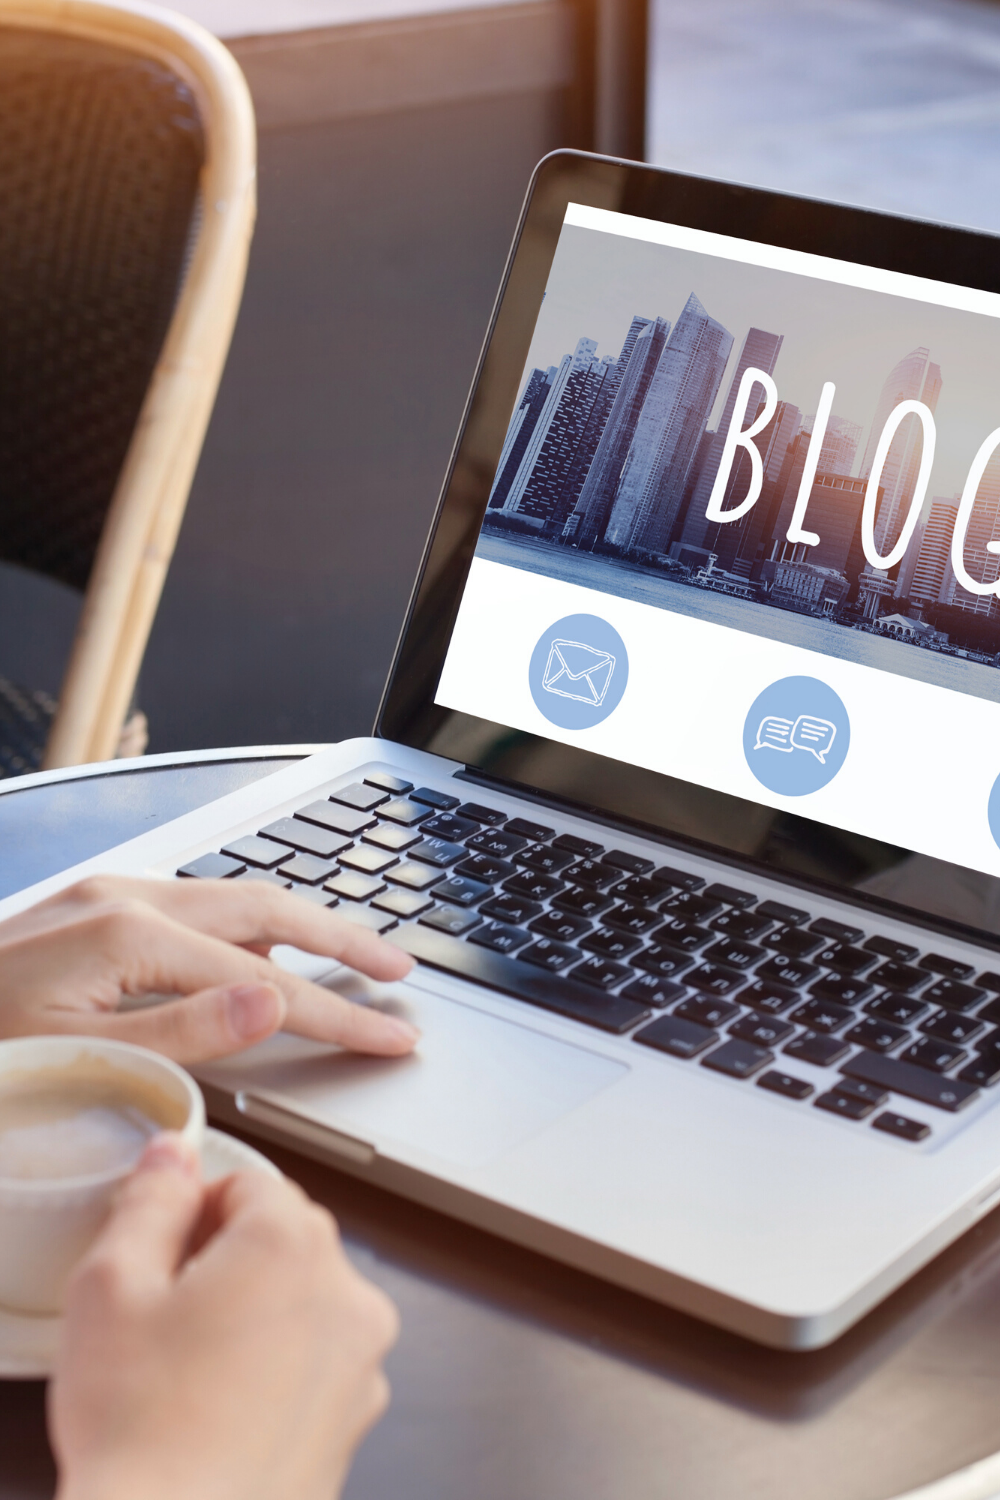 Shutdowns & Cancellations Have Made Speakers' Blogs More Essential Than Ever